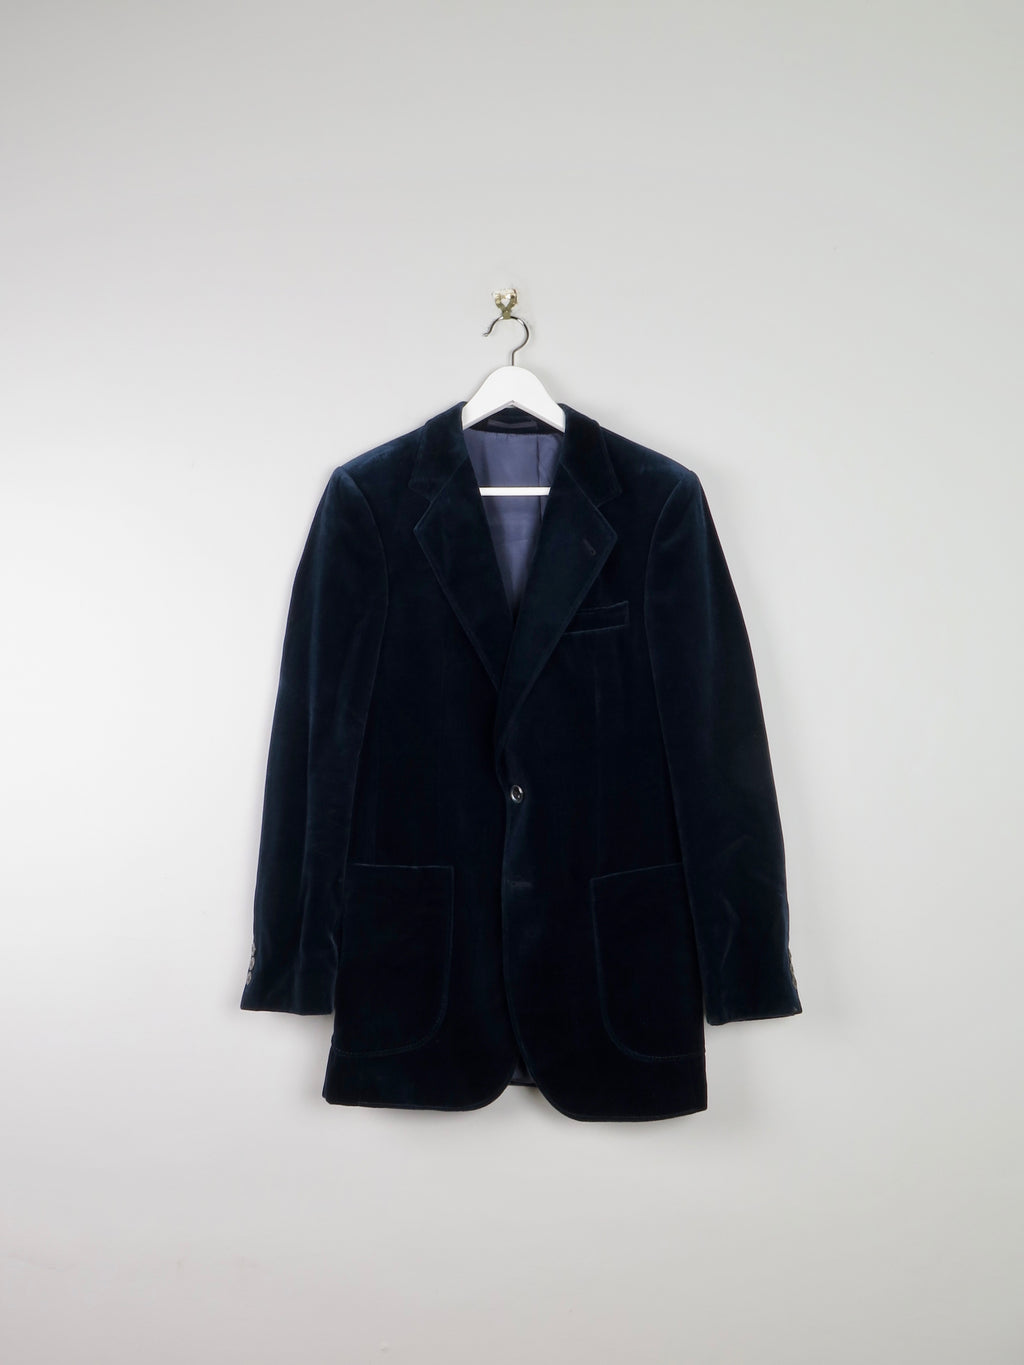 Men's Navy Velvet Jacket 38""